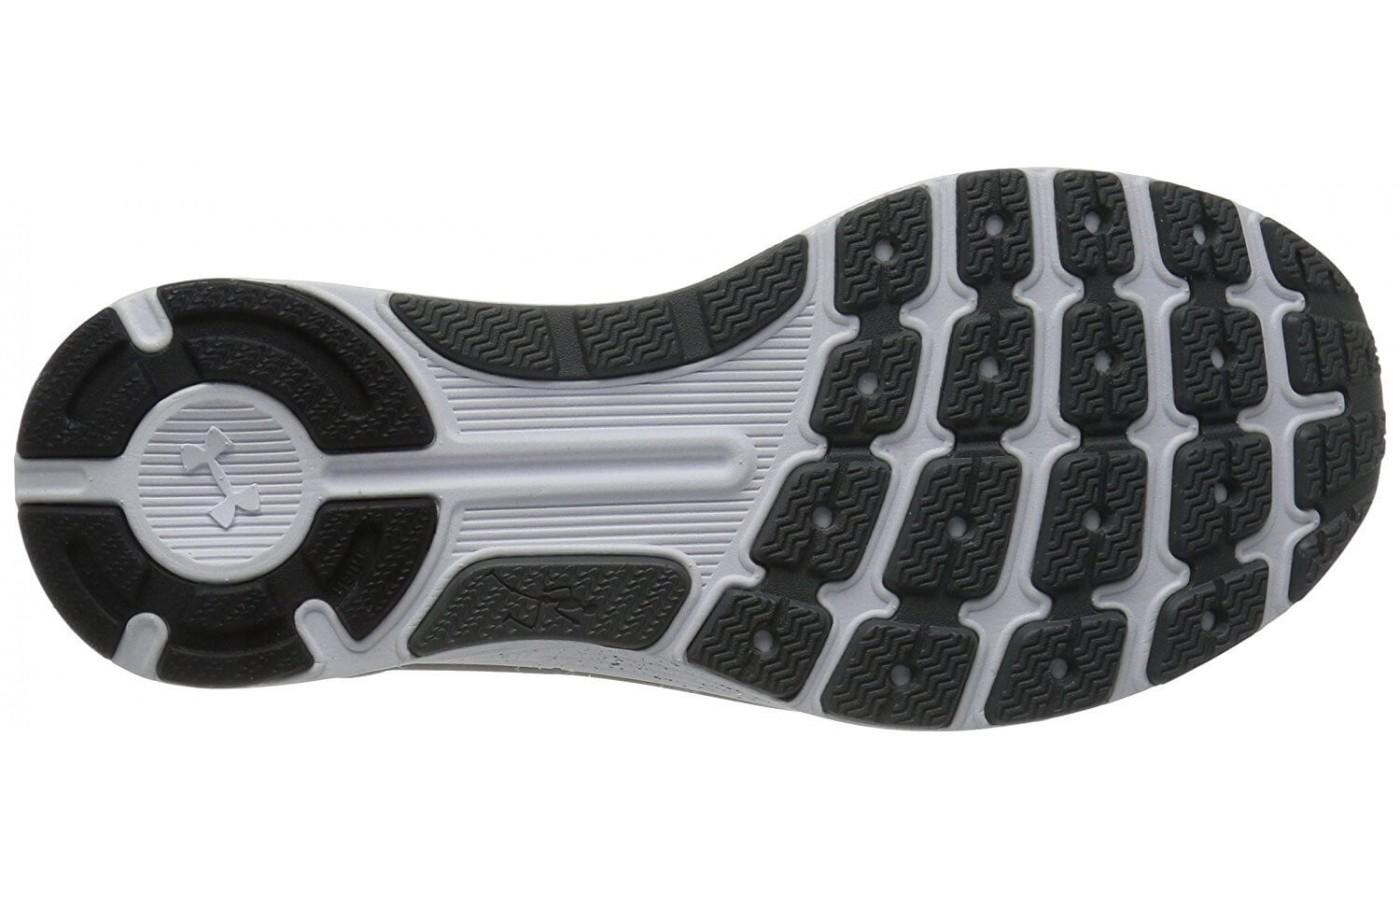 The flex grooved in the outsole provide added flexibility.